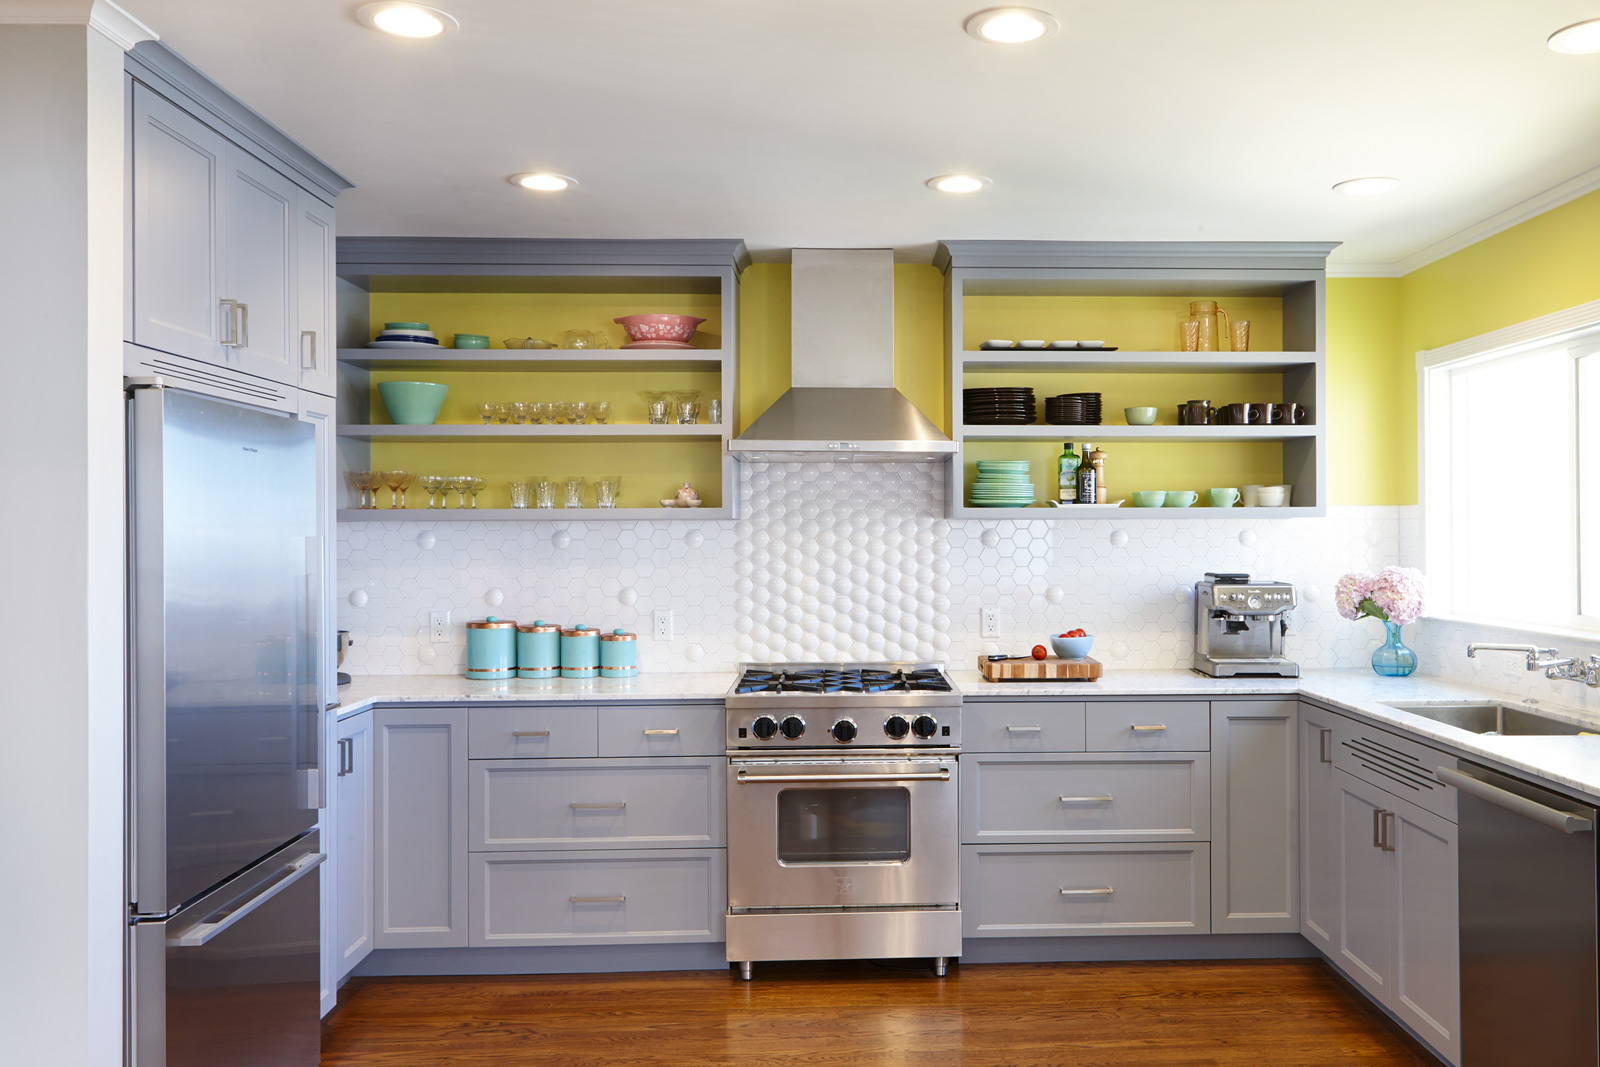 kitchen-paint-ideas-standard_f7ecbaaba98376f4c5357e7af8ccd477